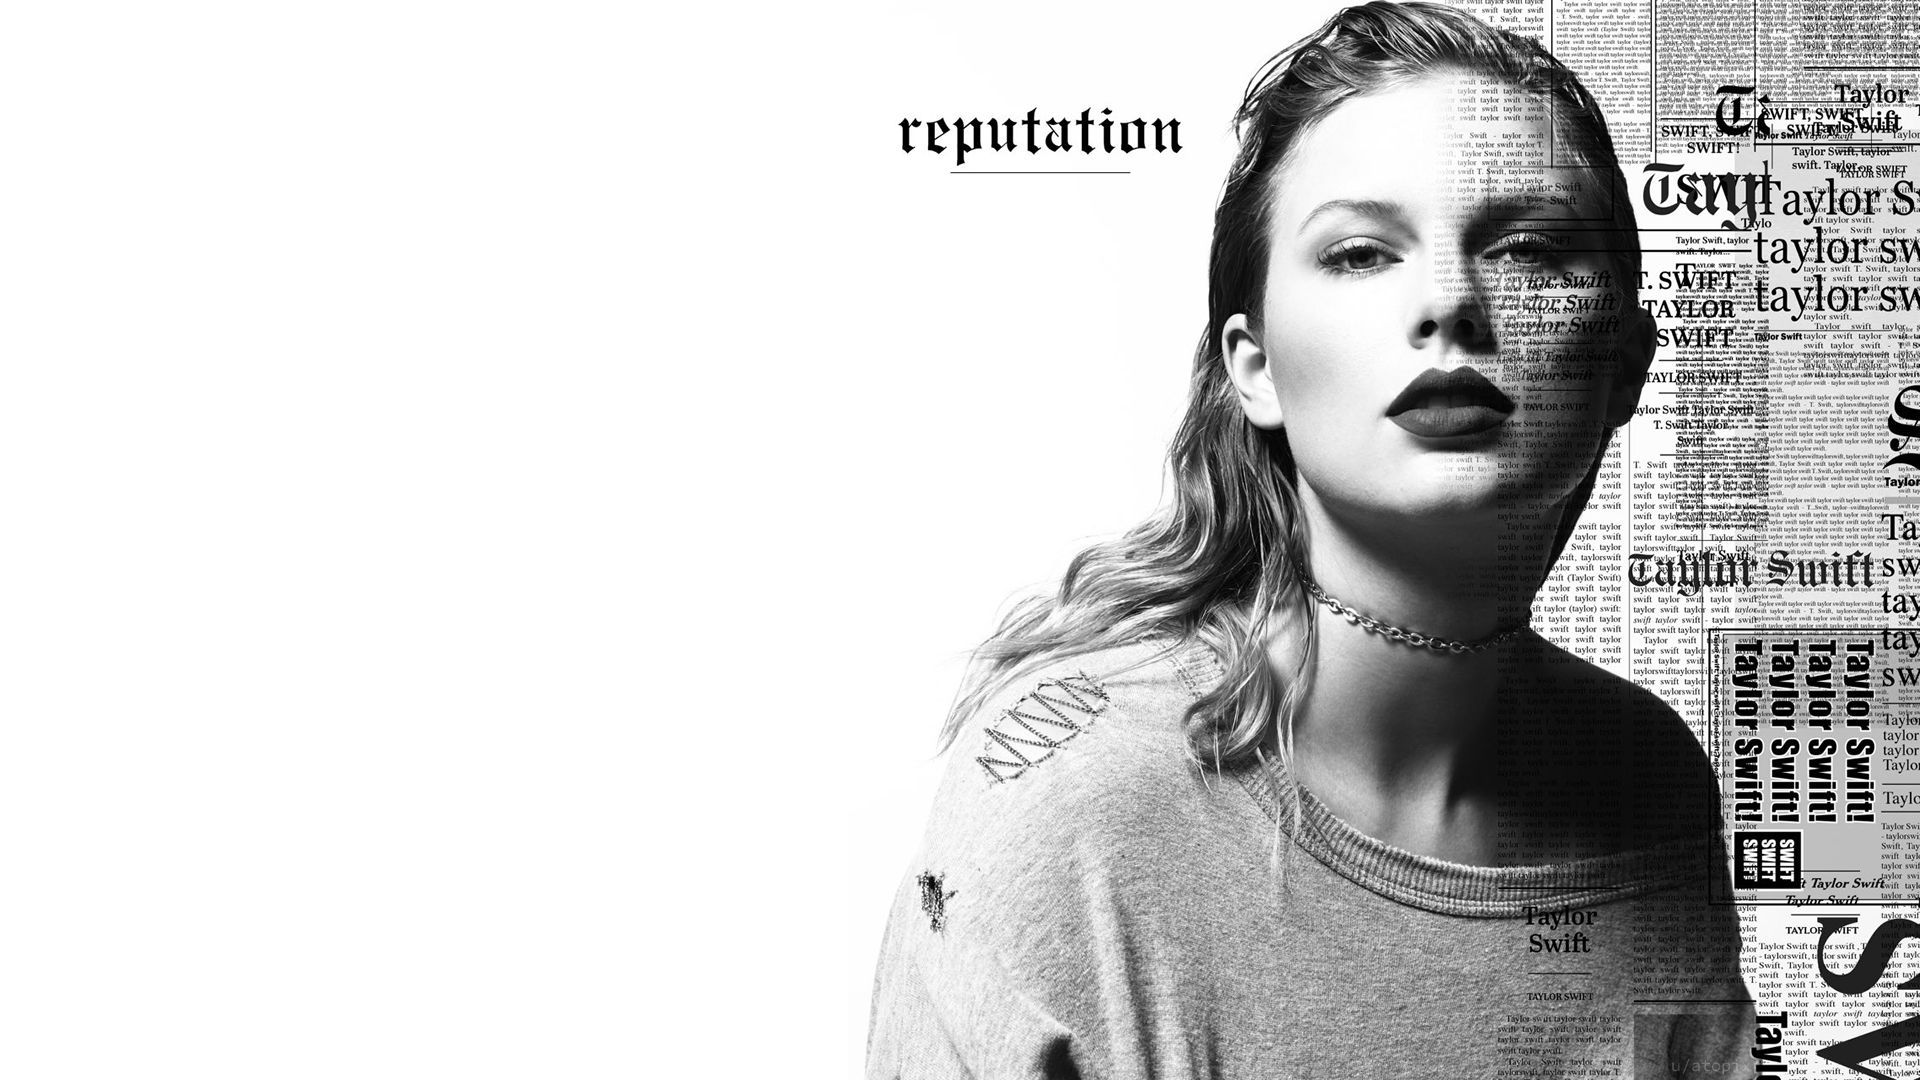 I Made A Ton Of Reputation Desktop Wallpapers In Multiple Colors In 2020 Taylor Swift Wallpaper Taylor Swift Taylor Swift Album Cover